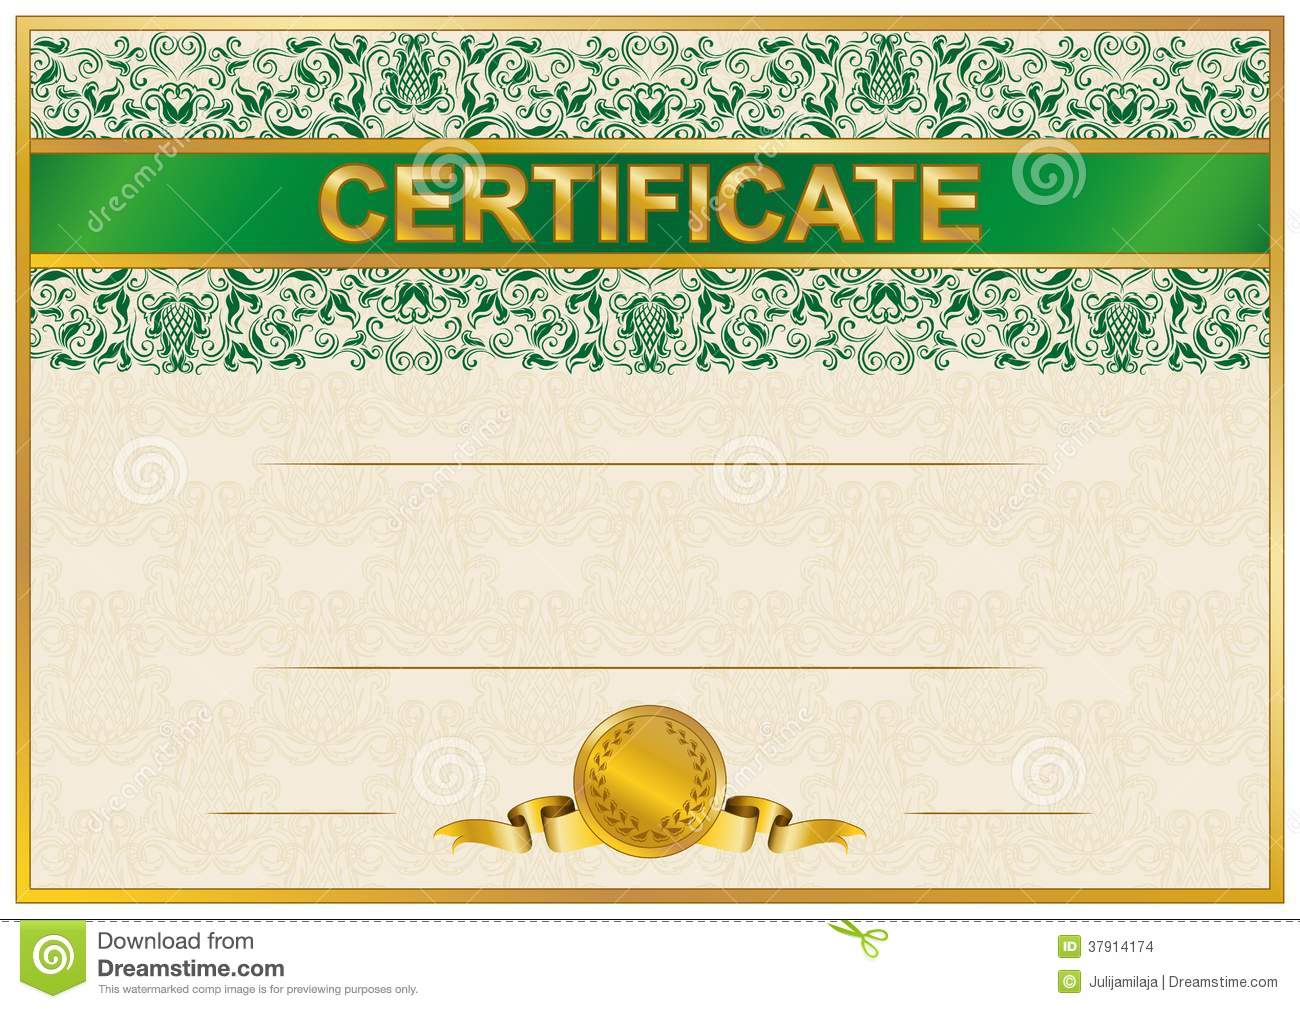 certificate template text coverletter for job education certificate template text printable sports certificate template for word fppt elegant template of certificate diploma